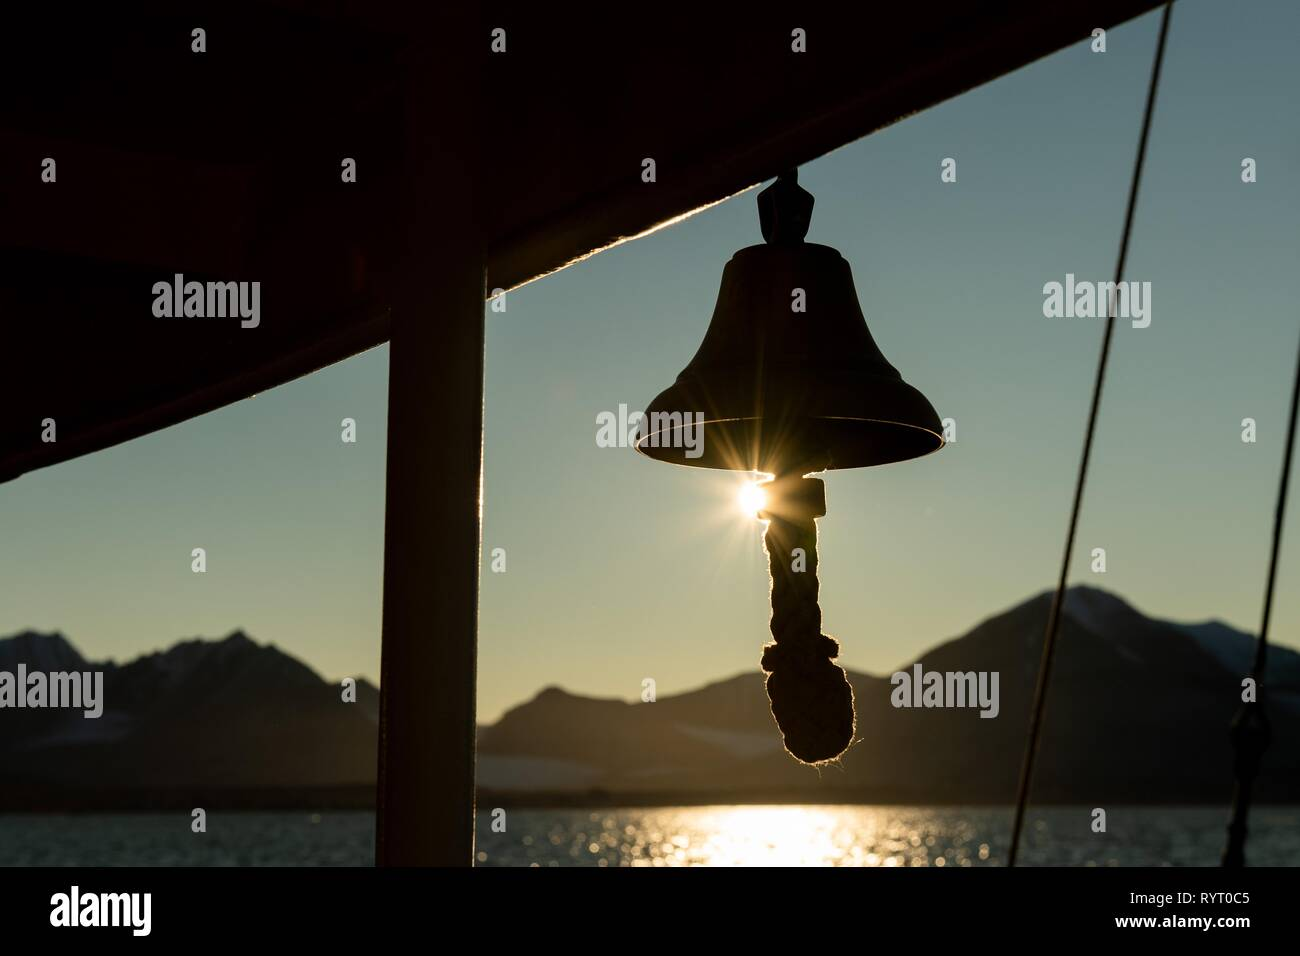 Ship's bell of a sailing ship, Silhouette in front of sun, Spitsbergen, Svalbard, Norway - Stock Image